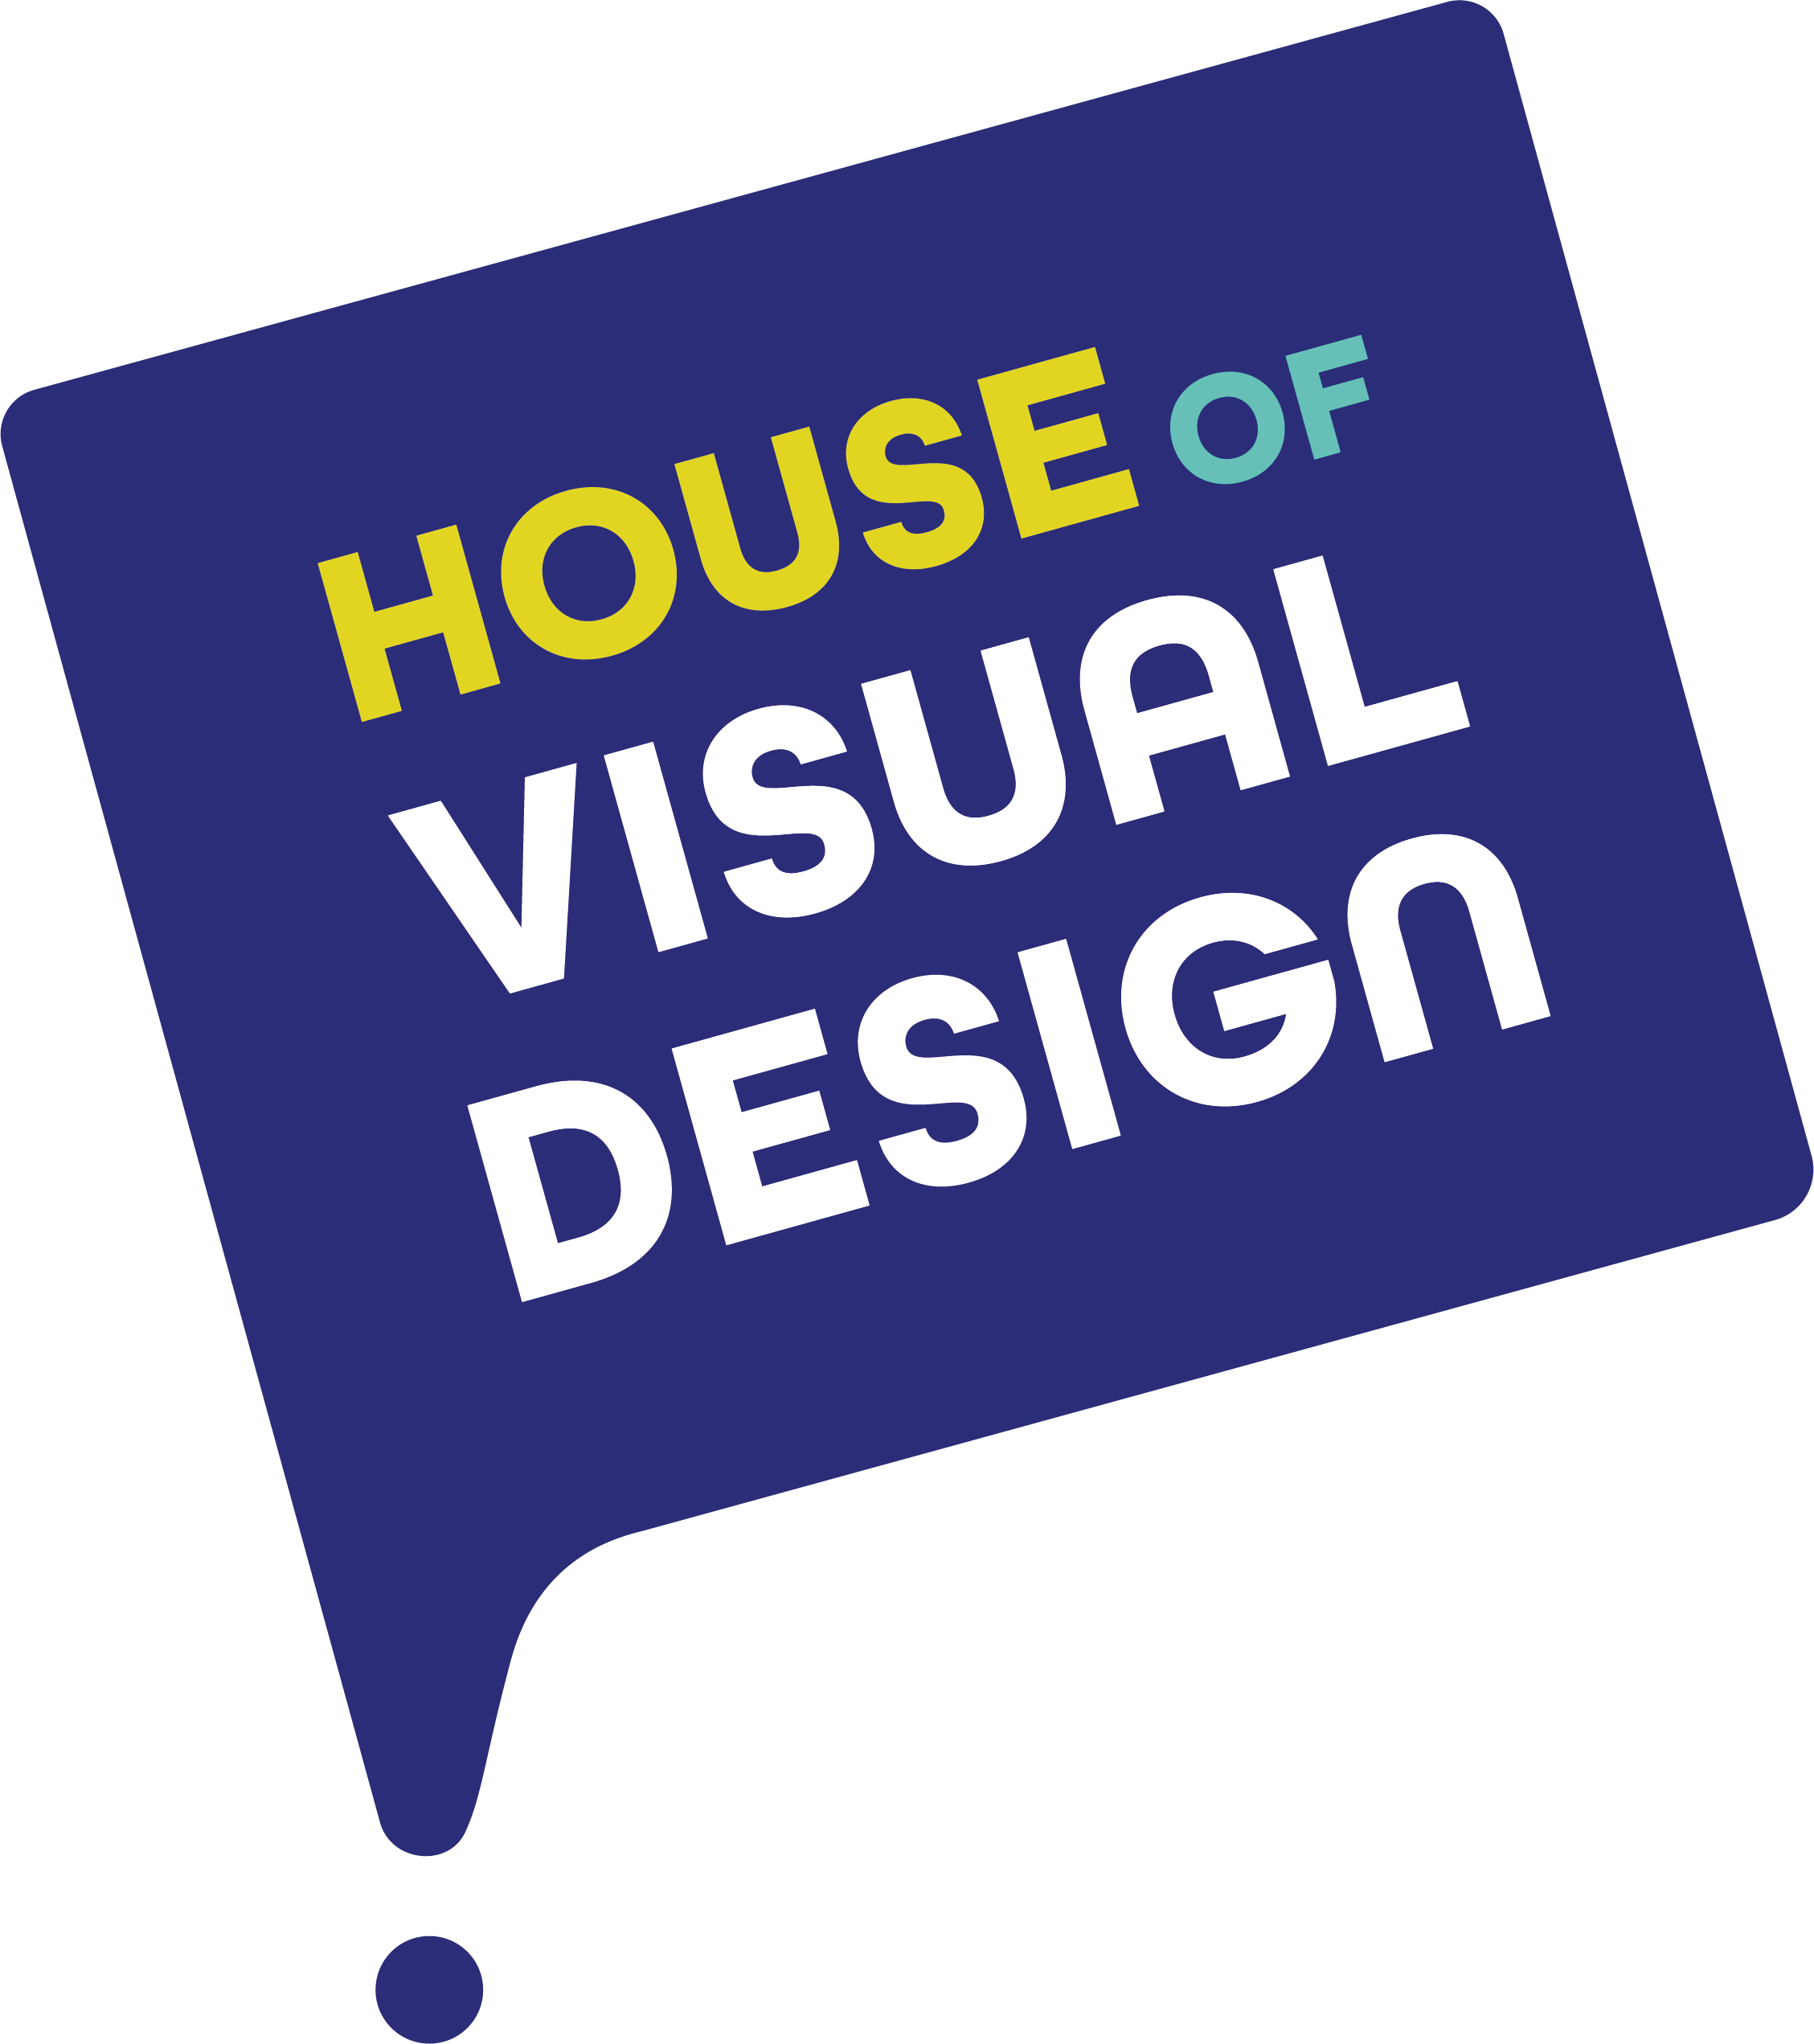 House of Visual Design